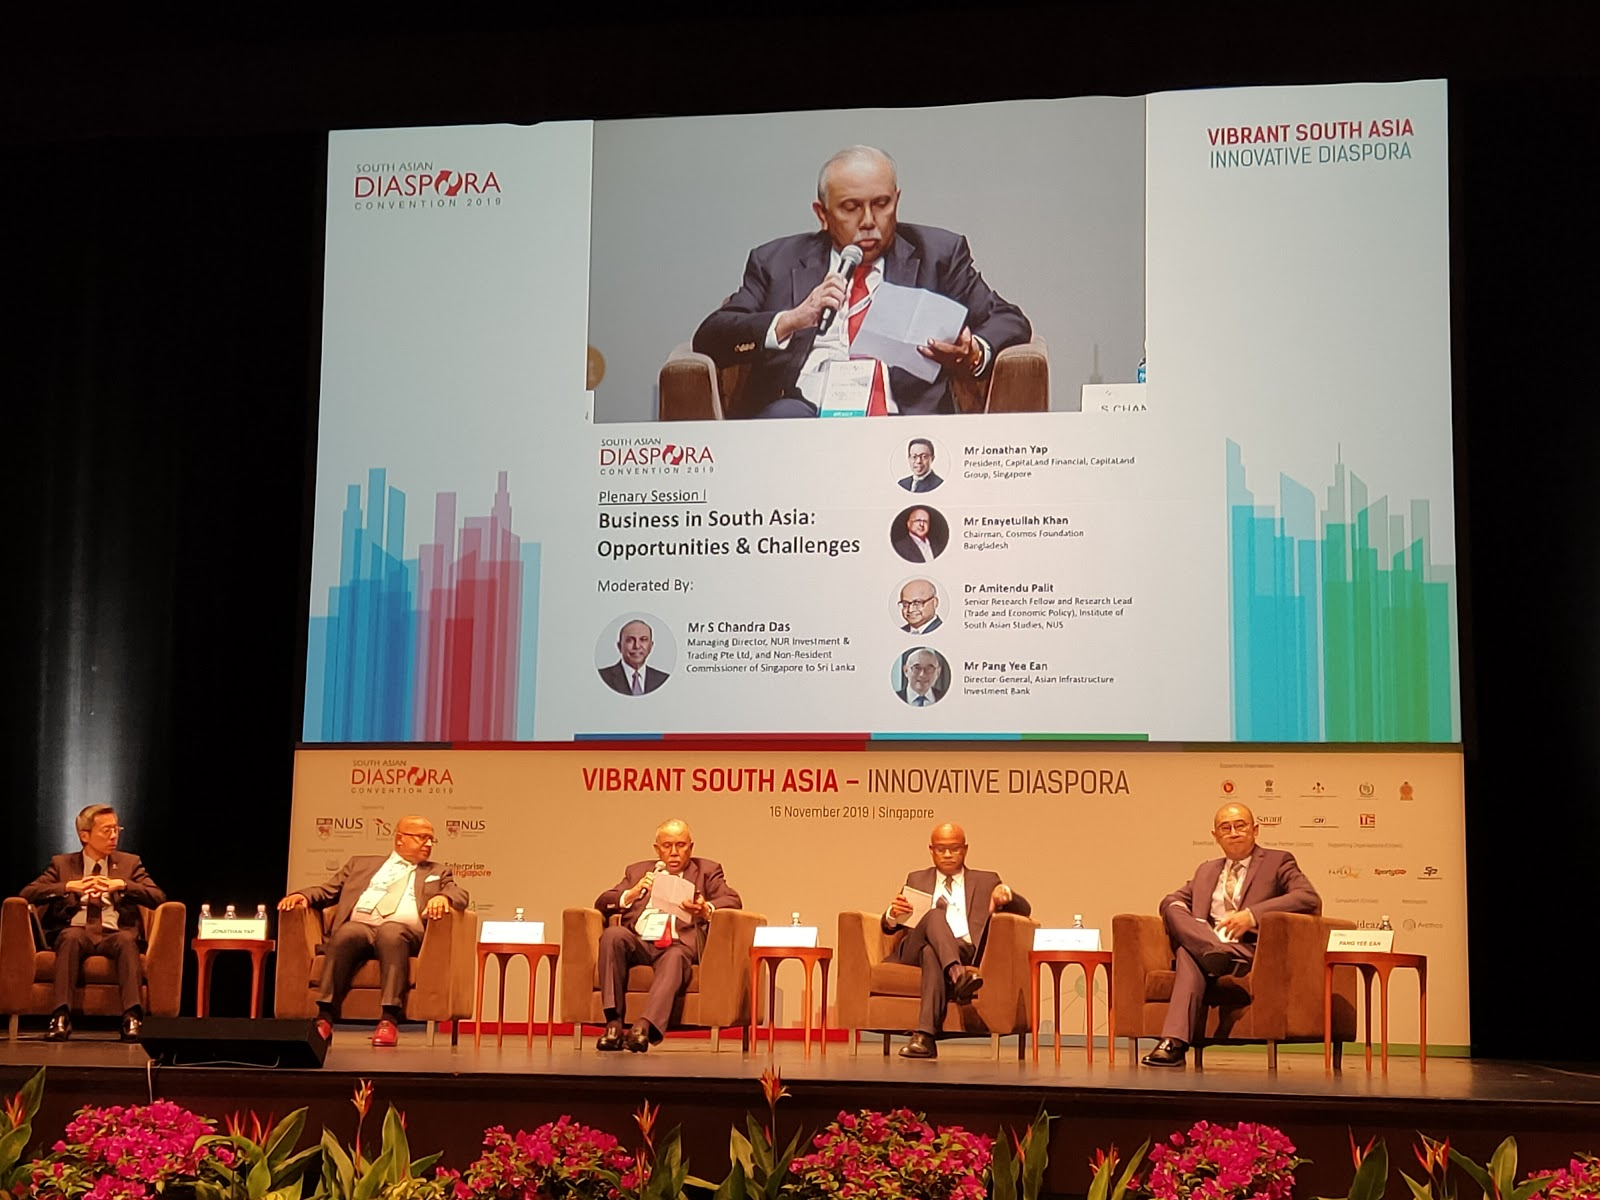 From left to right: Mr. Jonathan Yap, President CapitaLand Financial, Singapore; Mr. Enayetullah Khan, Chairman, Cosmos Foundation, Bangladesh; Moderator for the sesion, Mr. S. Chandra Das, MD of NUR Investment and Trading and non-resident commissioner of Singapore to Sri Lanka; Dr. Amitendu Palit, Senior Research Fellow and Research Lead, ISAS and Mr. Pang Yee Ean, Director General, Asian Infrastructure Investment Bank. Photo: Connected to India